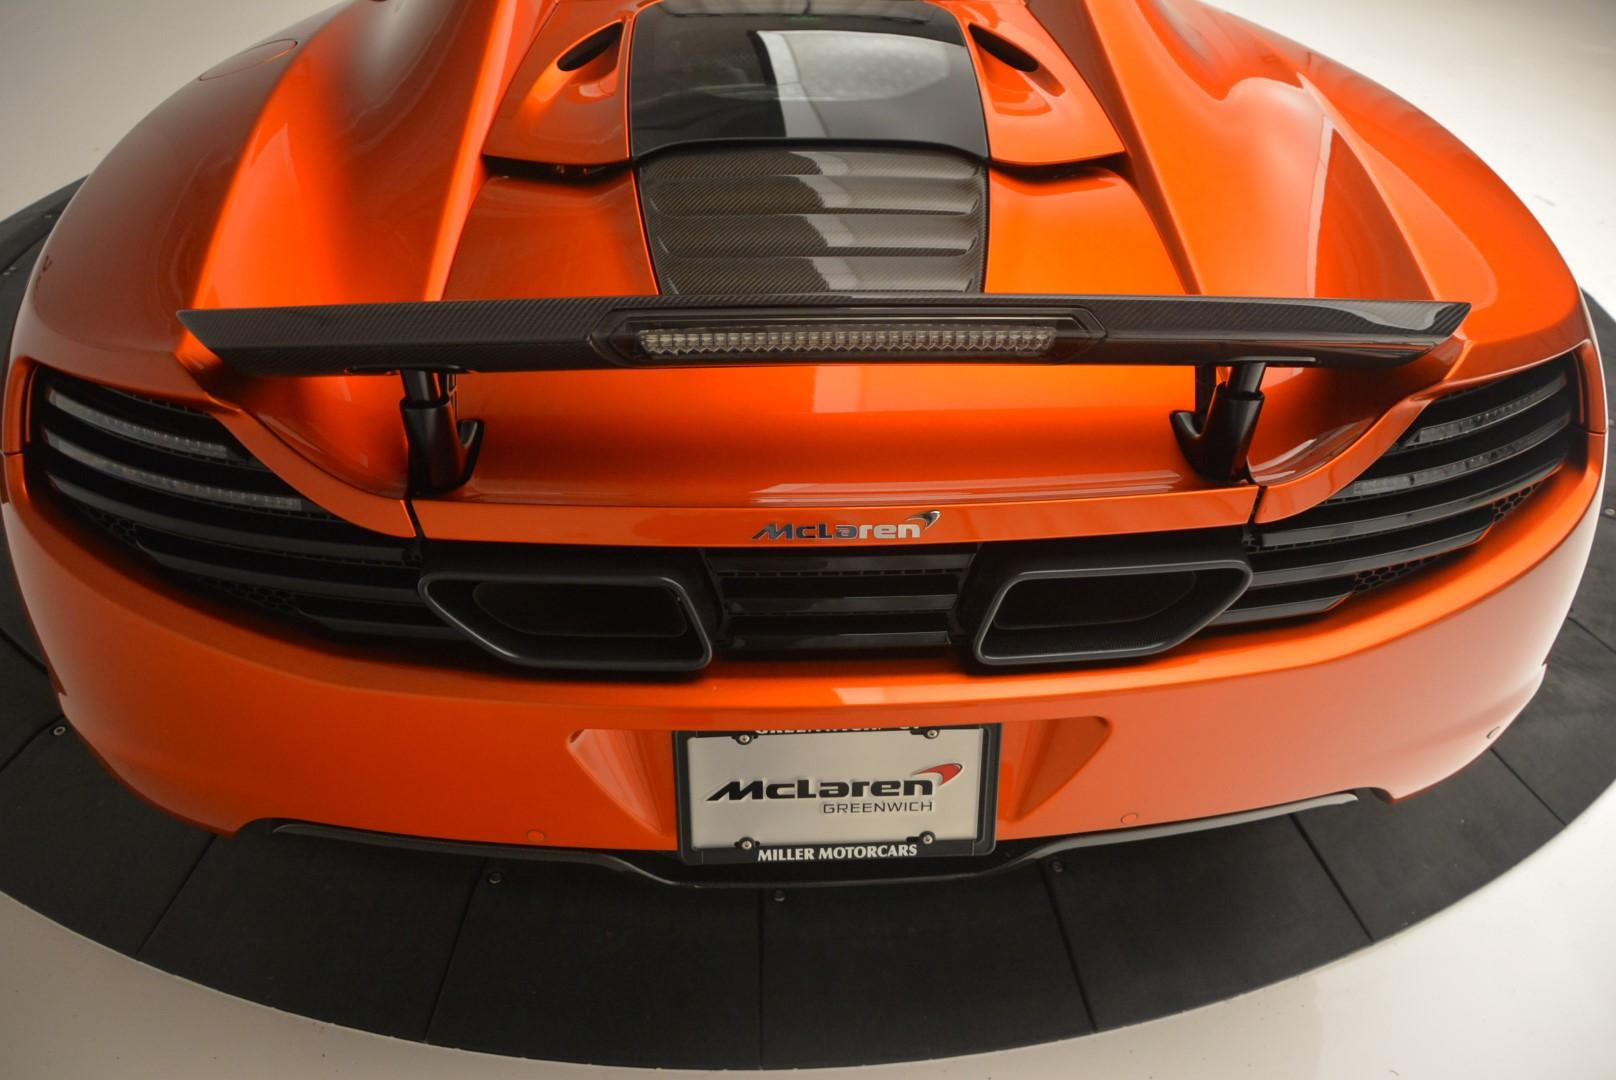 Used 2013 McLaren MP4-12C Base For Sale In Greenwich, CT. Alfa Romeo of Greenwich, 3070 66_p33